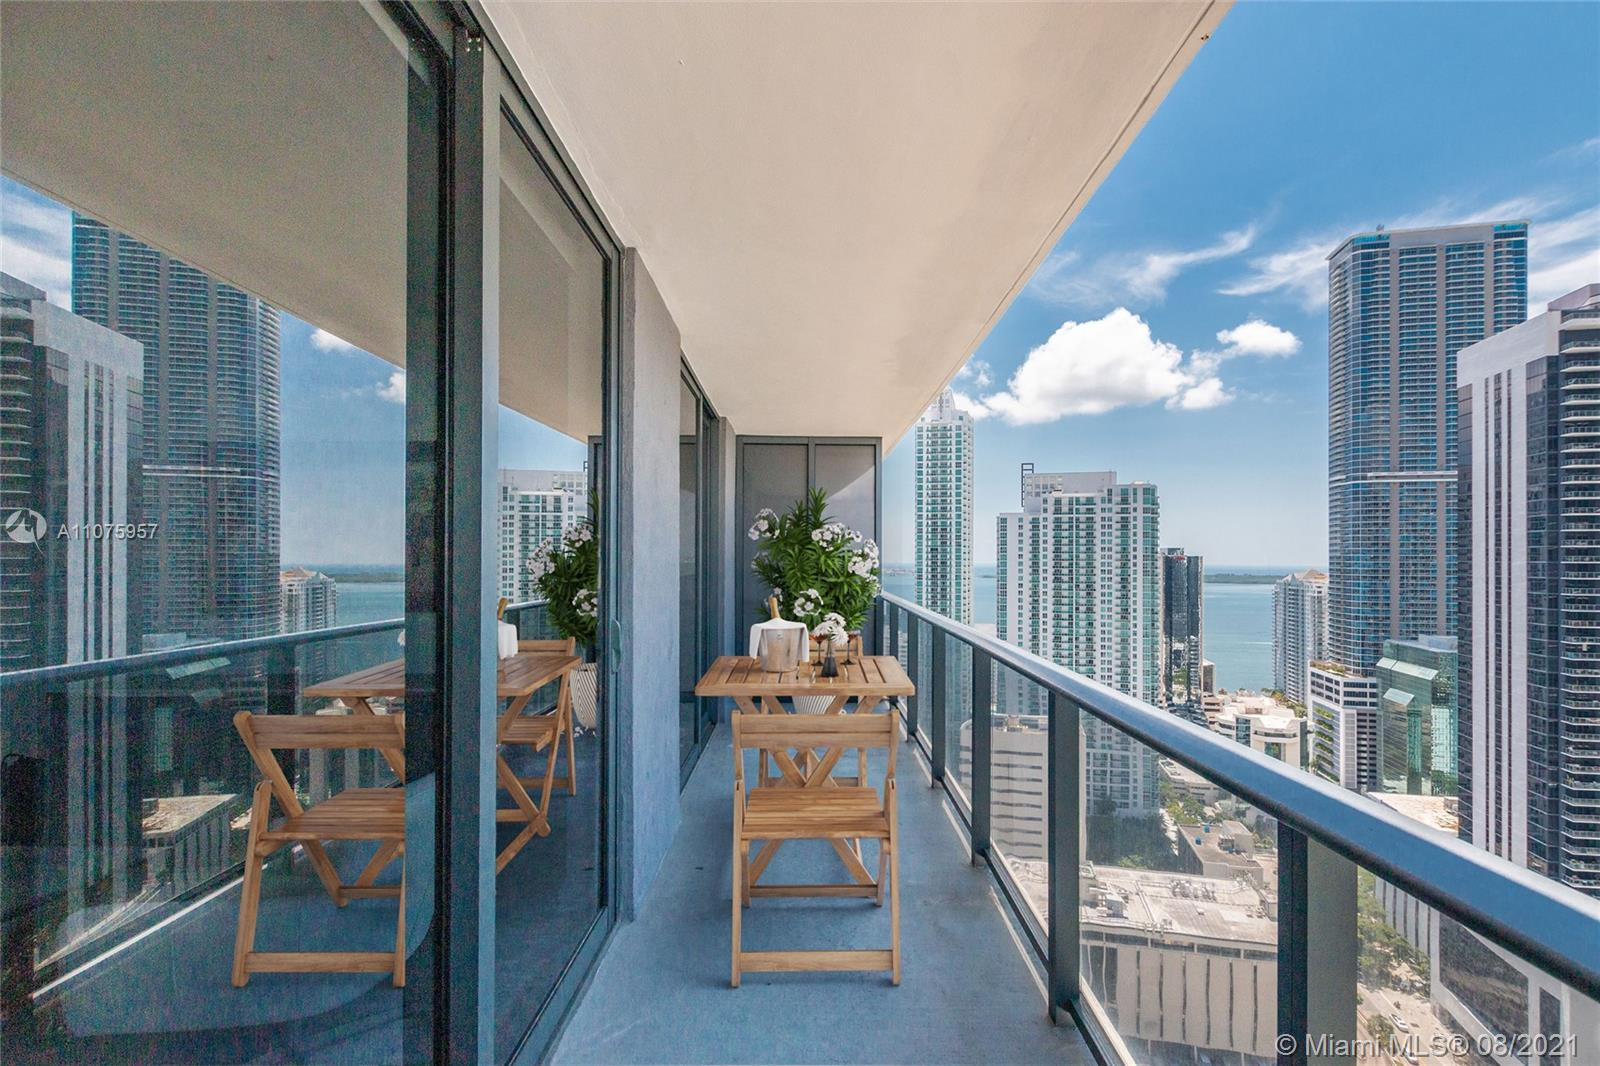 A modern condo in the heart of Brickell, with a panoramic view of the Miami Skyline and Biscayne Bay from the large terrace or the spacious bedroom and the living room & dining area.  The unit is in the stunning Brickell Heights East, walking distance to Brickell City Center, Publix supermarket, restaurants, and the Underline. Amenities include: spectacular rooftop pool, home theater, entertainment & party rooms, spa, a well-equipped fitness center, children's playroom, conference room; 24-hr Concierge; ample HOA reserves. The den can be used as a home office or converted to a second bedroom. Upgrades include cabinetry from the Closet Factory, built-in shelves in the walk-in closet, and a new large capacity washer/dryer; one valet parking space & additional car valet for a monthly fee.